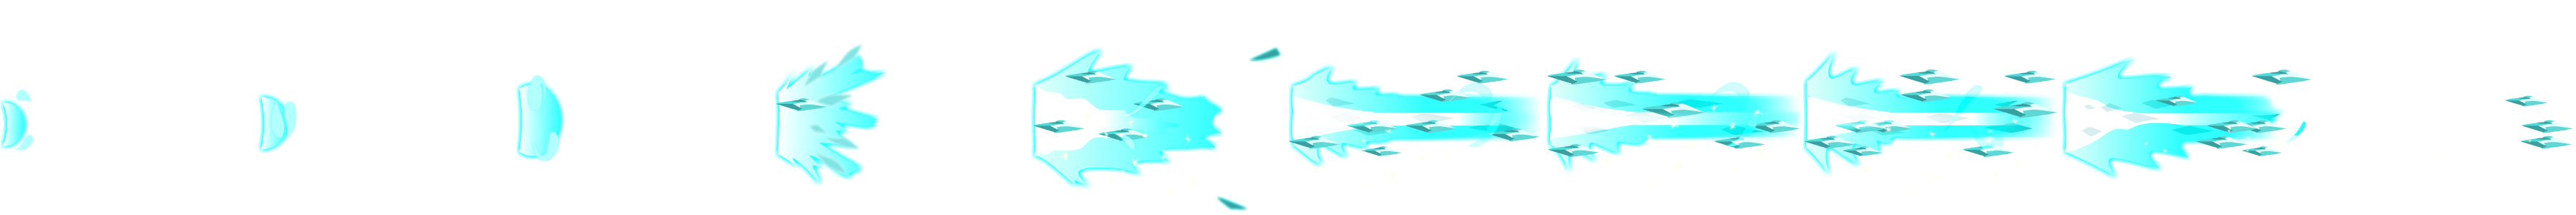 https://images.neopets.com/bd2/items/ranged/beam_ice.png